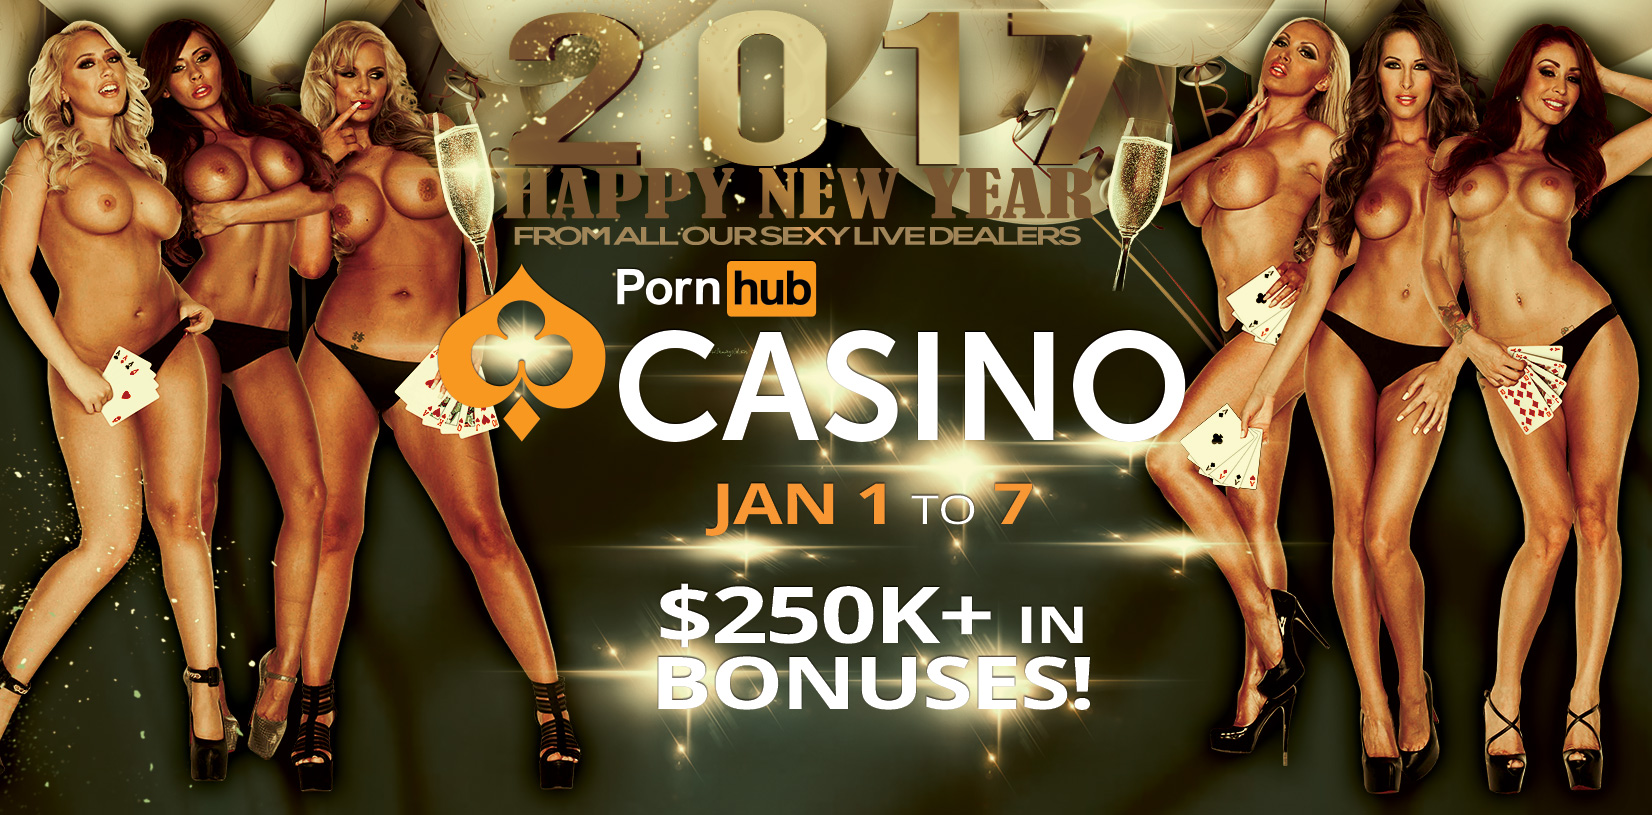 sitename-happy-new-year-2017-promo-from-all-our-sexy-live-dealers-250k-in-bonus